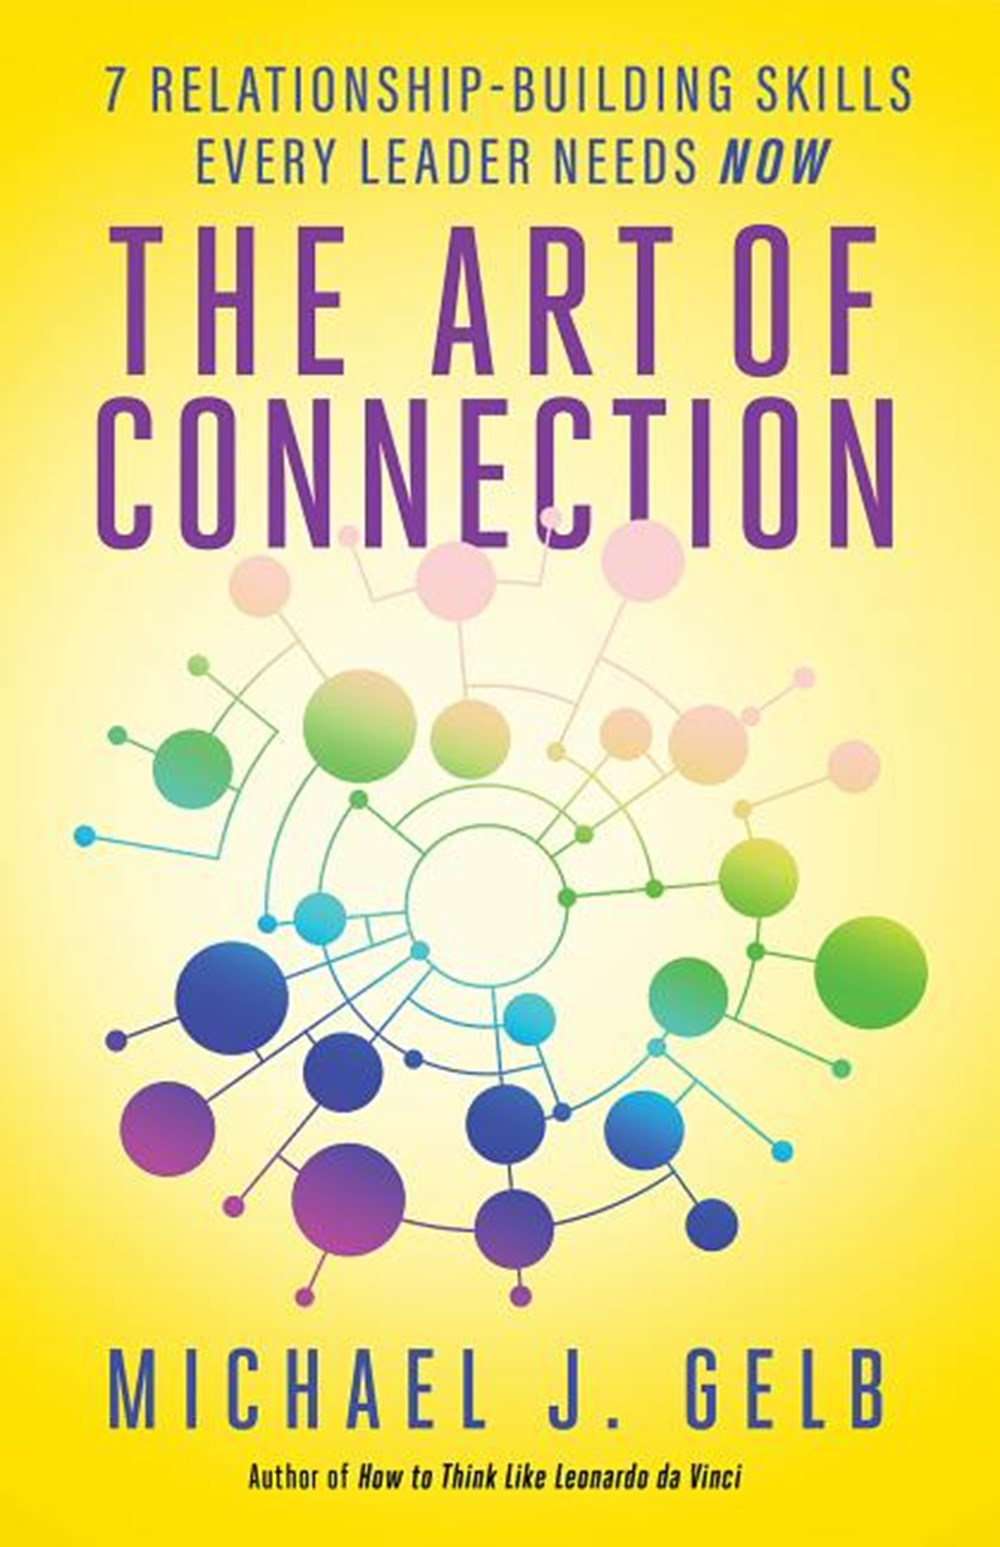 Art of Connection: 7 Relationship-Building Skills Every Leader Needs Now